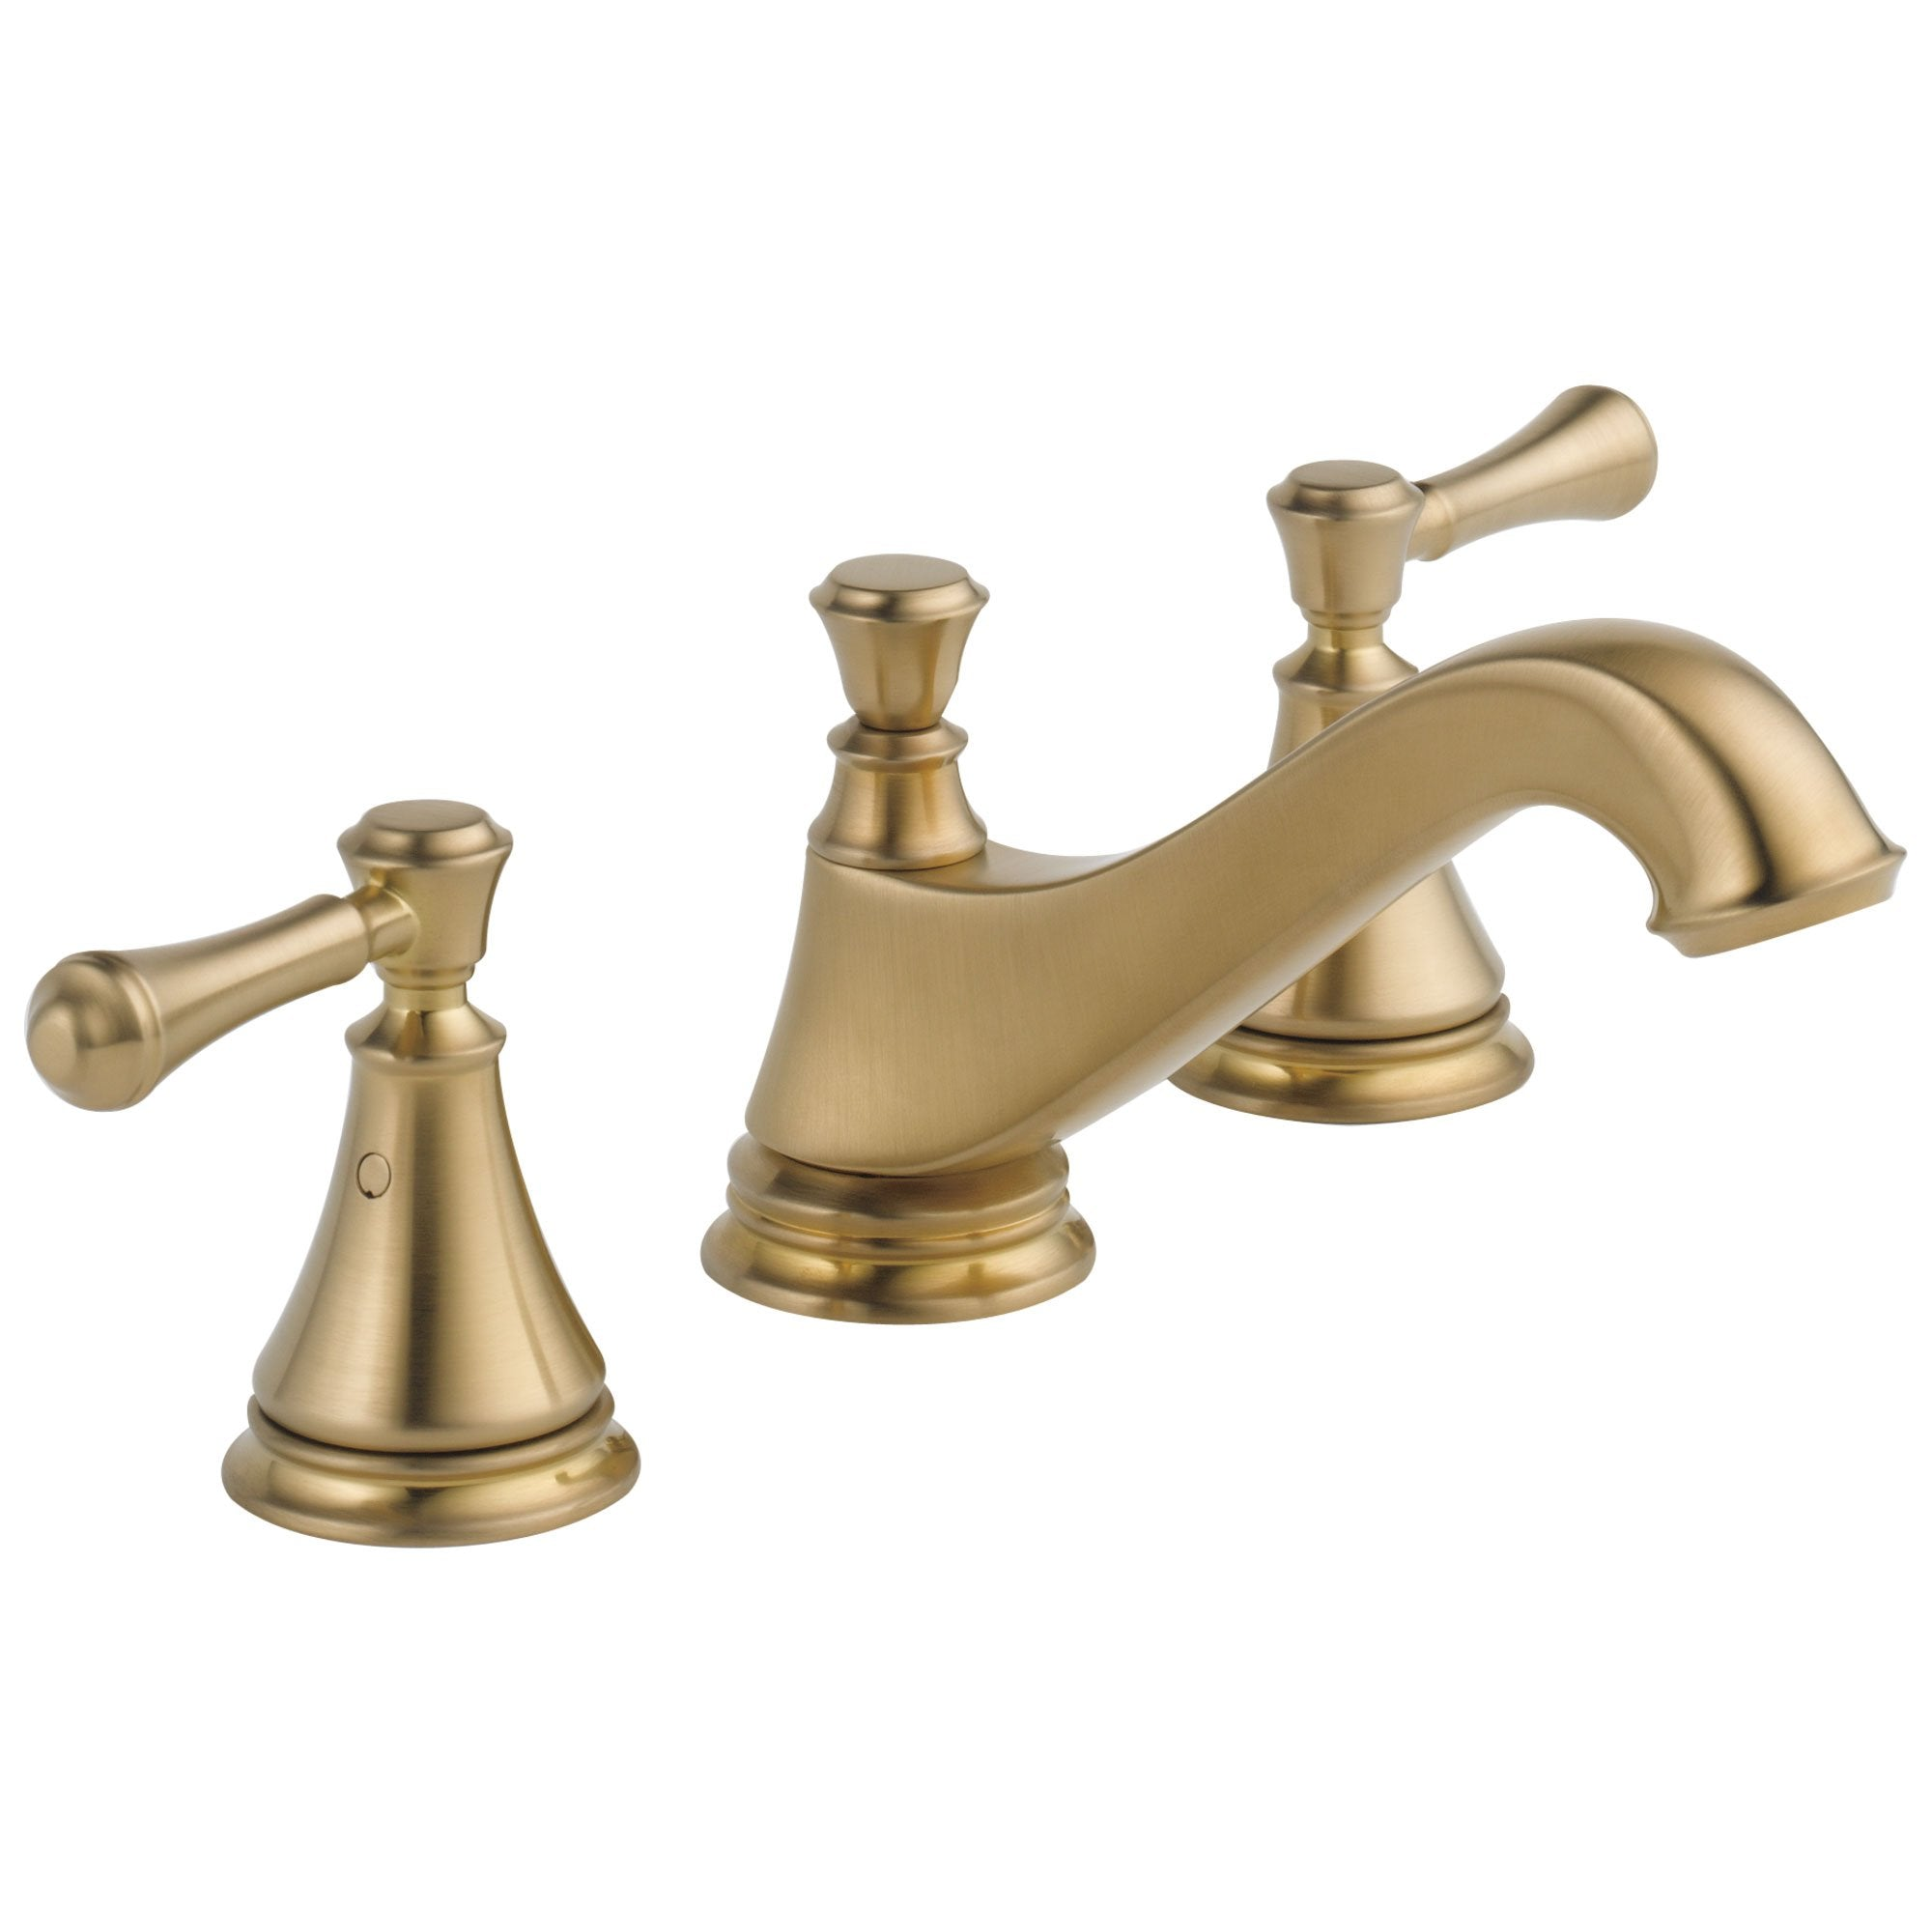 Delta Cassidy Collection Champagne Bronze Traditional Low Spout Widespread Bathroom Sink Faucet INCLUDES Two Lever Handles and Drain D1799V